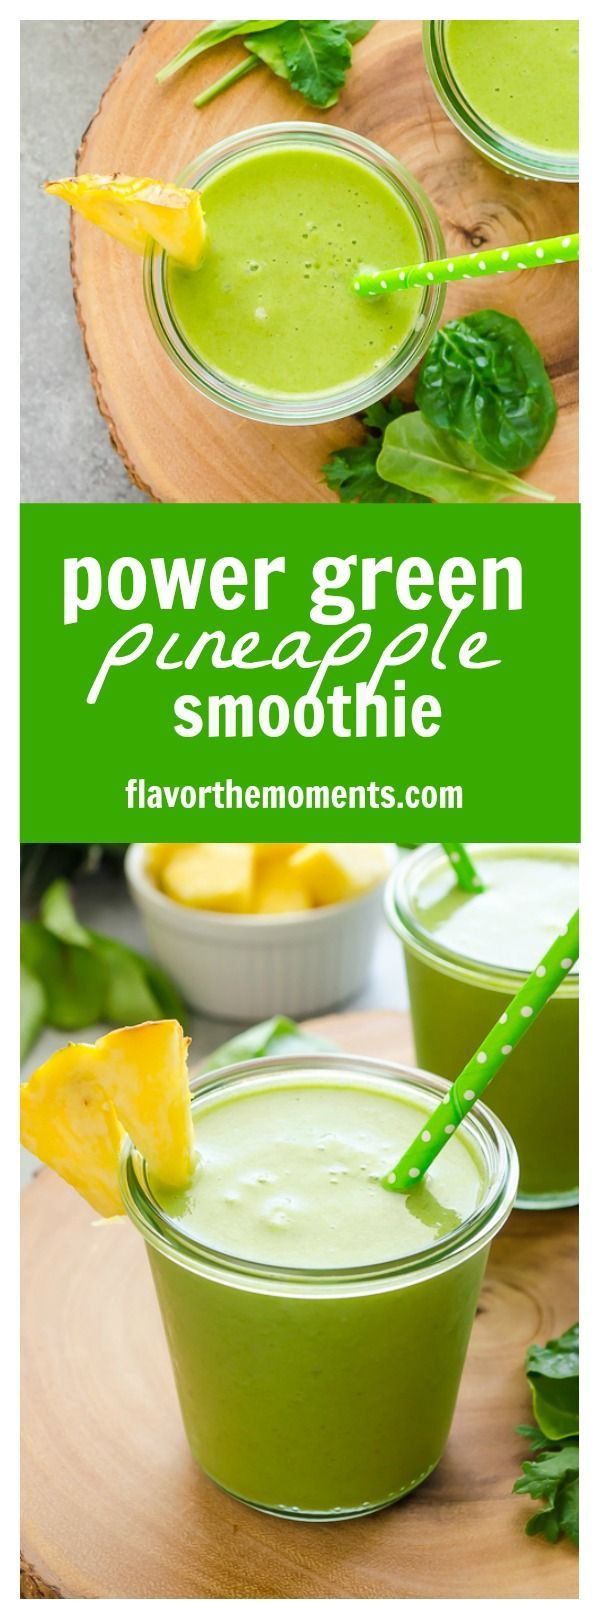 Power Green Pineapple Smoothie is a refreshing blend of pineapple, power greens, and chia seeds for a vegan, energy boosting smoothie that even the kids will love! /FlavortheMoment/